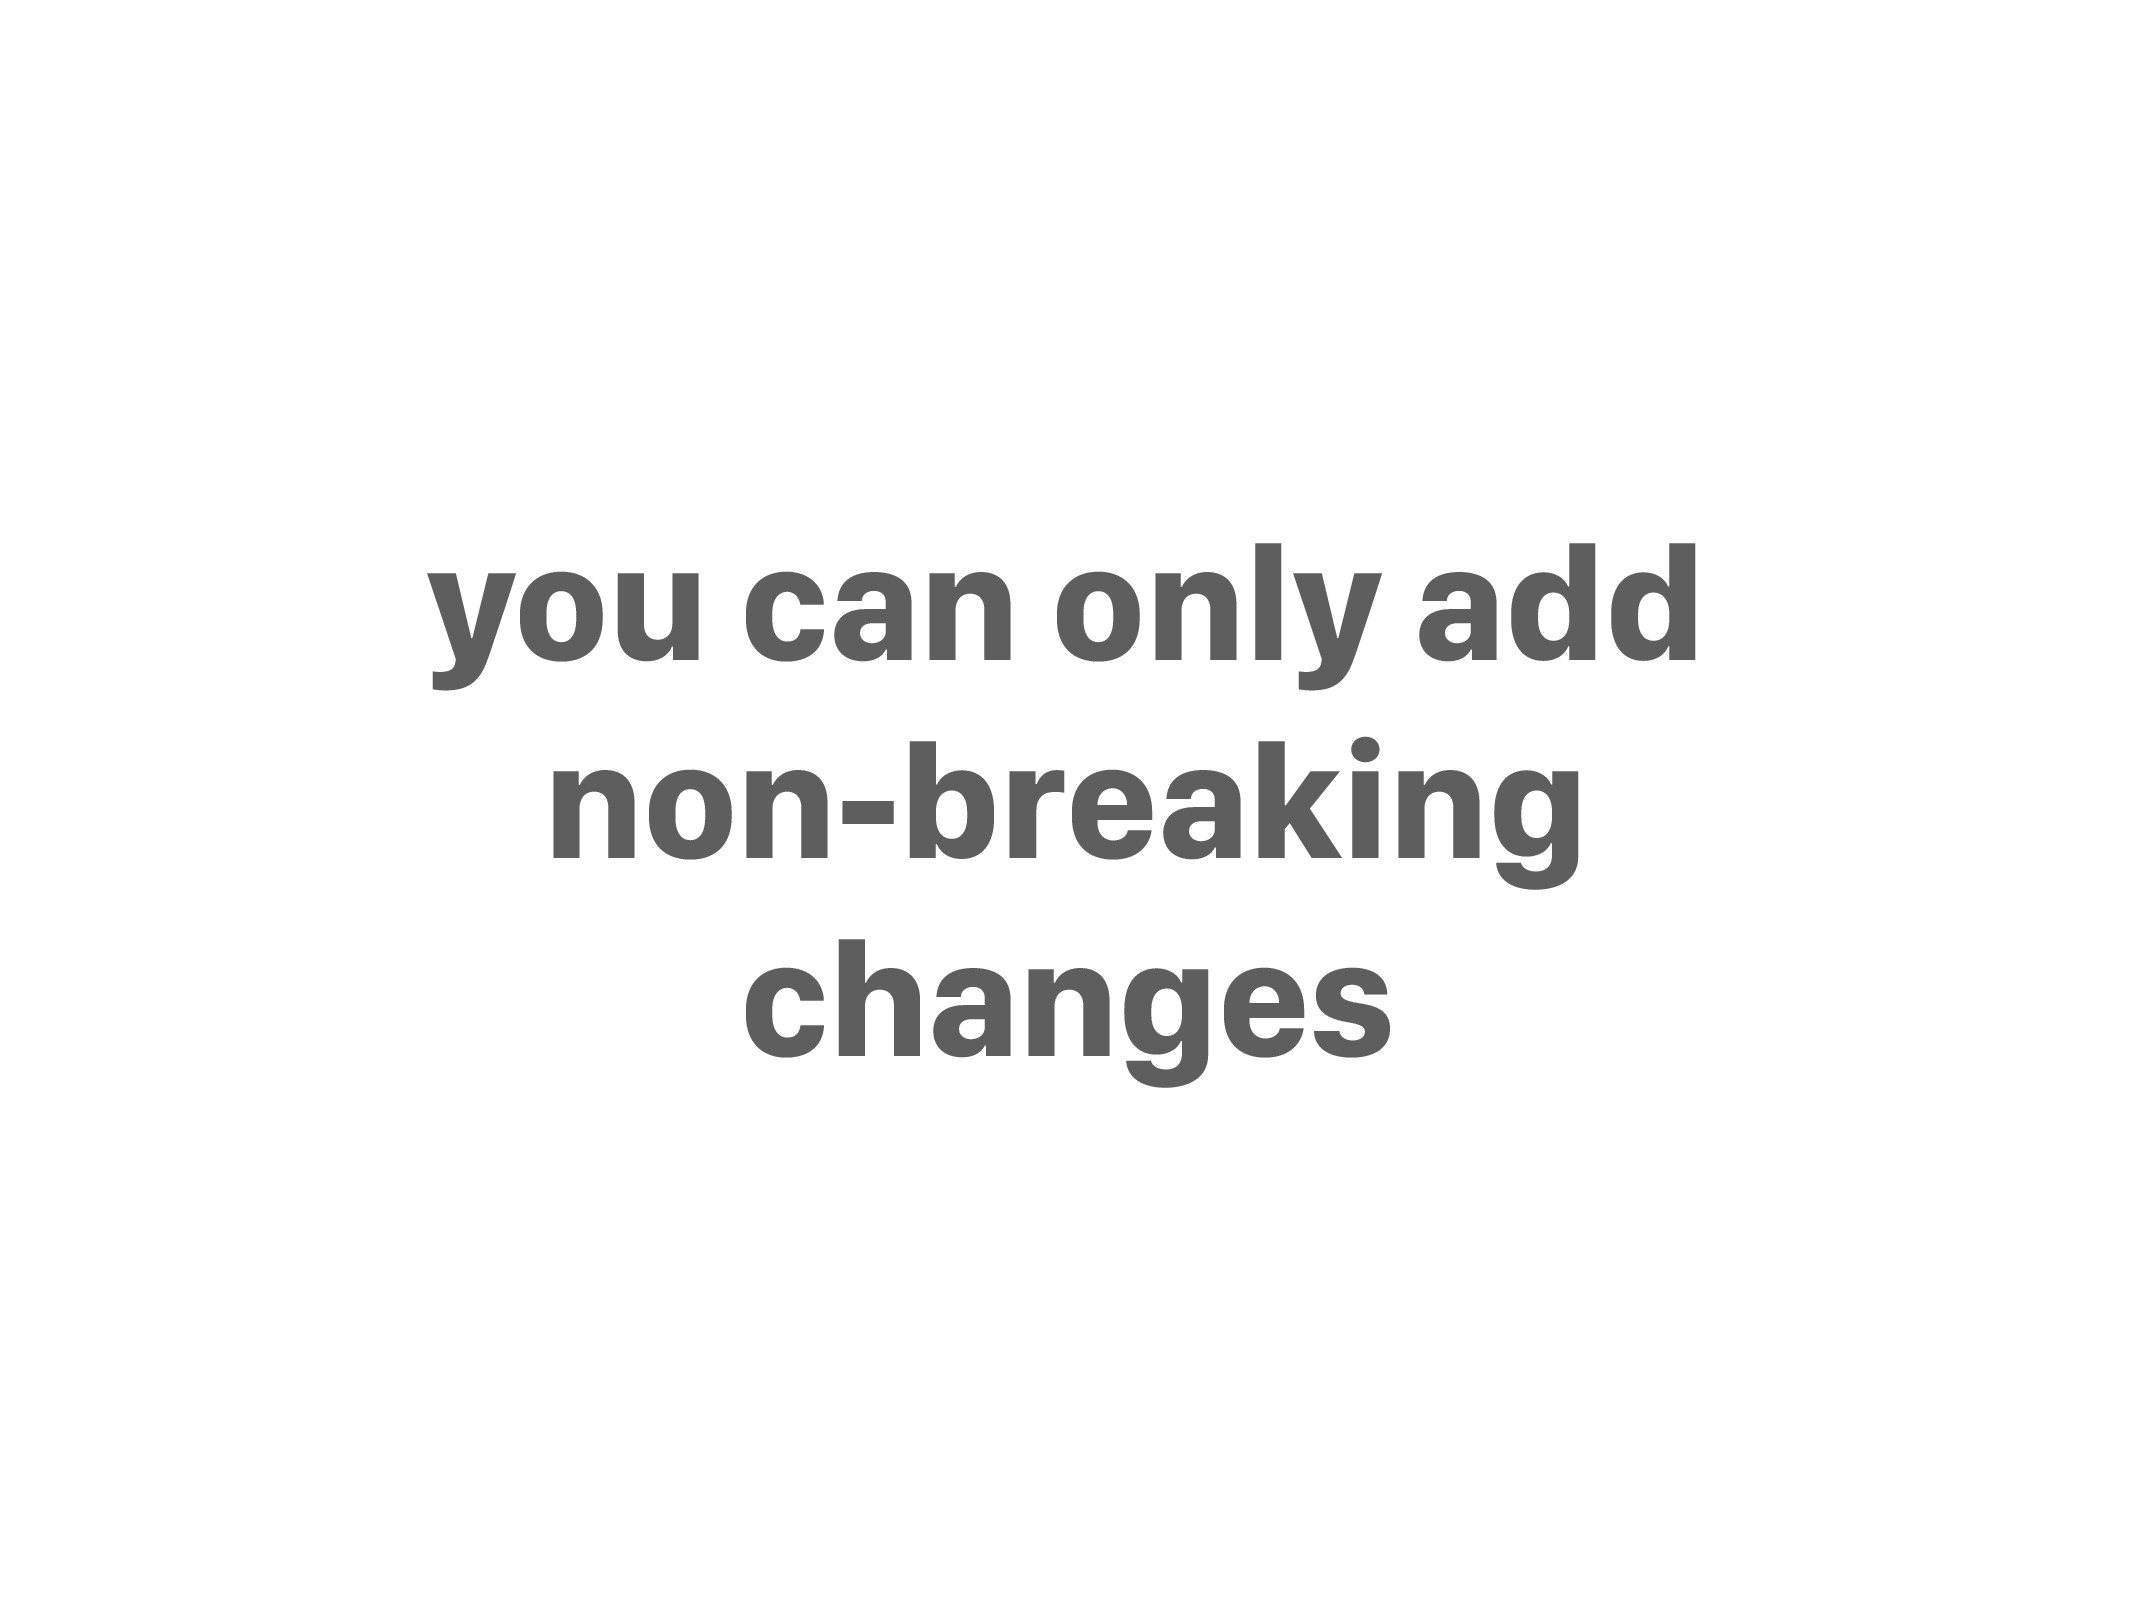 you can only add non-breaking changes